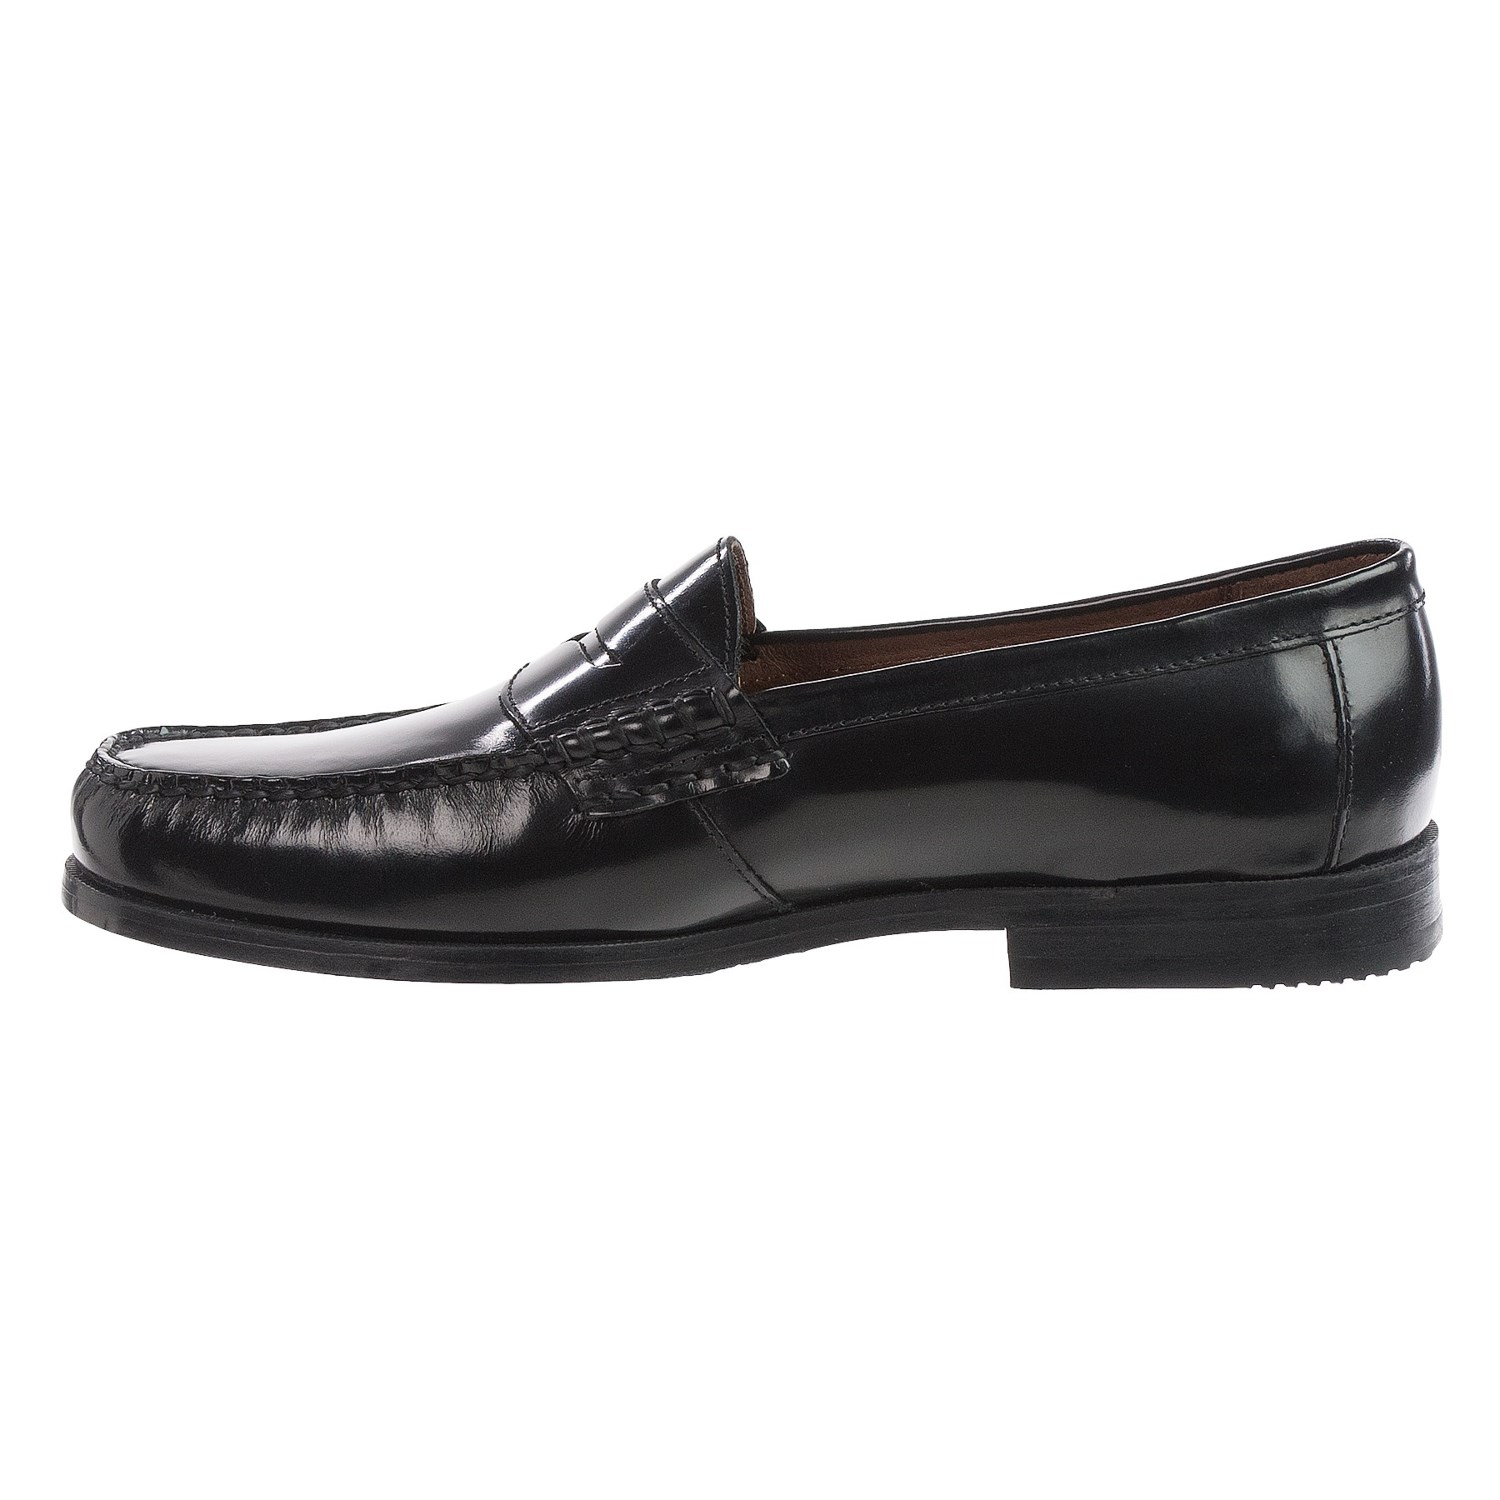 buddhist single men in murphy ★ johnston murphy hollis waterproof plain toe oxford (men) @ review price mens dress shoes, enjoy free shipping on all orders [johnston murphy hollis waterproof plain toe oxford (men)] find this season s must-have styles from top brands order online today.